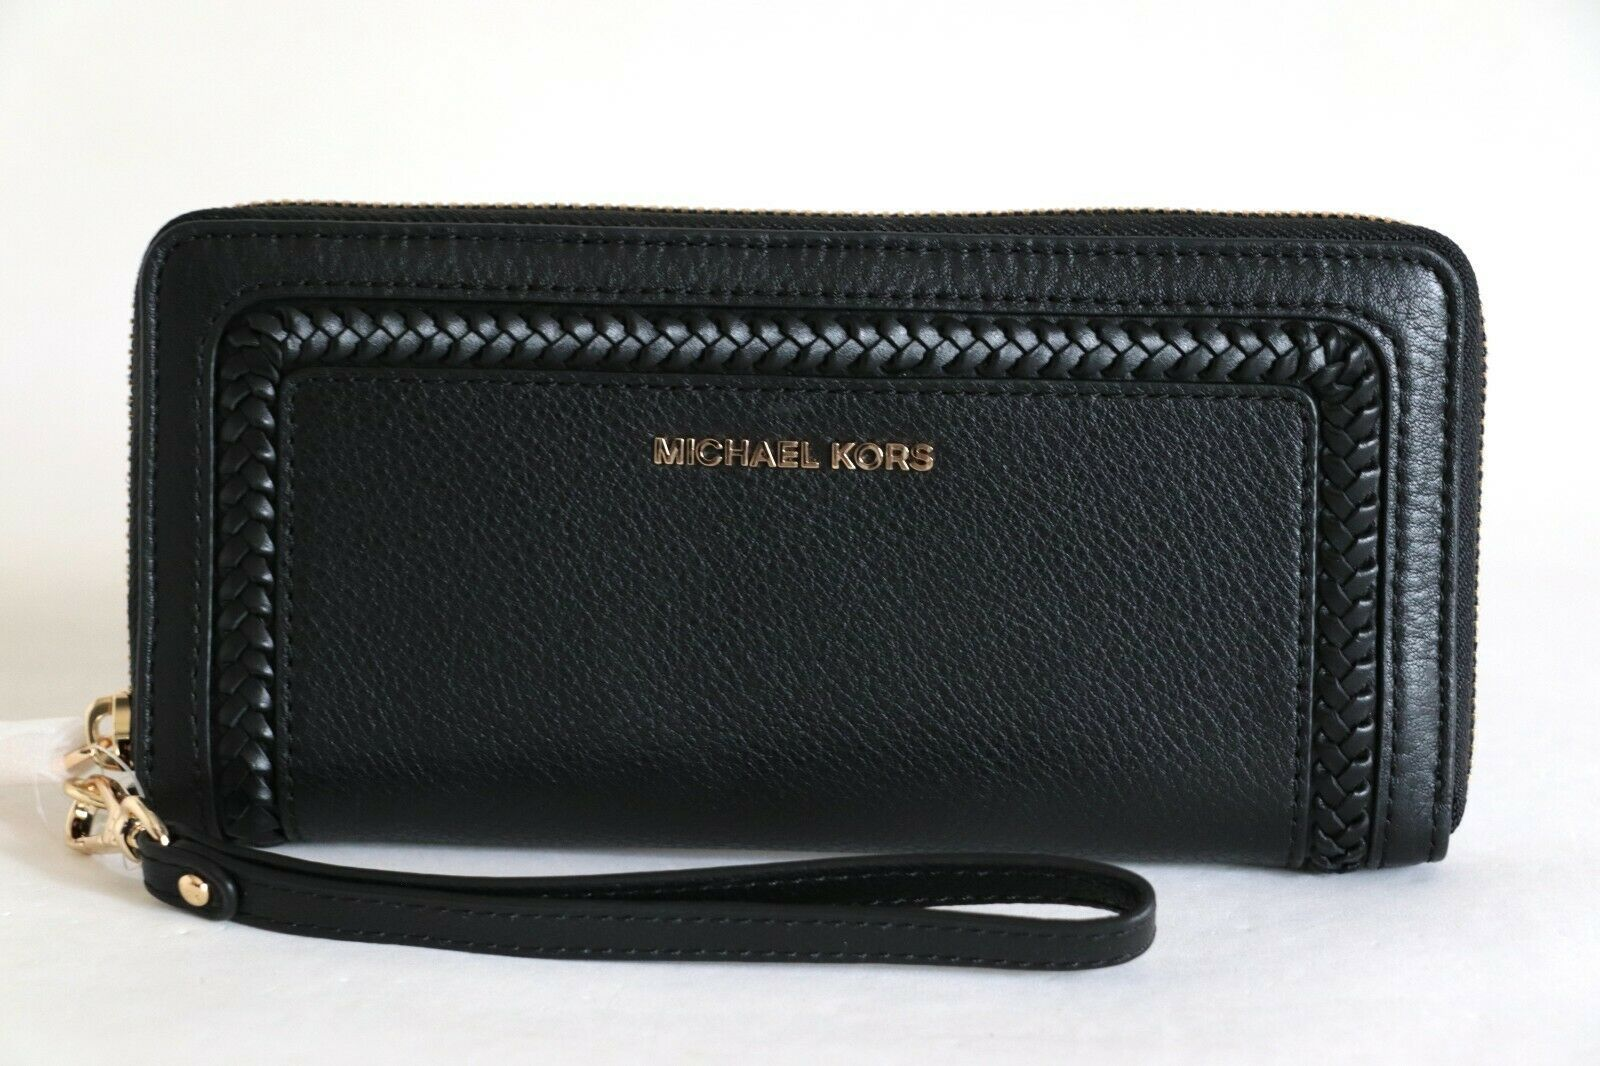 Primary image for NWT MICHAEL KORS LEXINGTON LEATHER LARGE TRAVEL WALLET WRISTLET BLACK